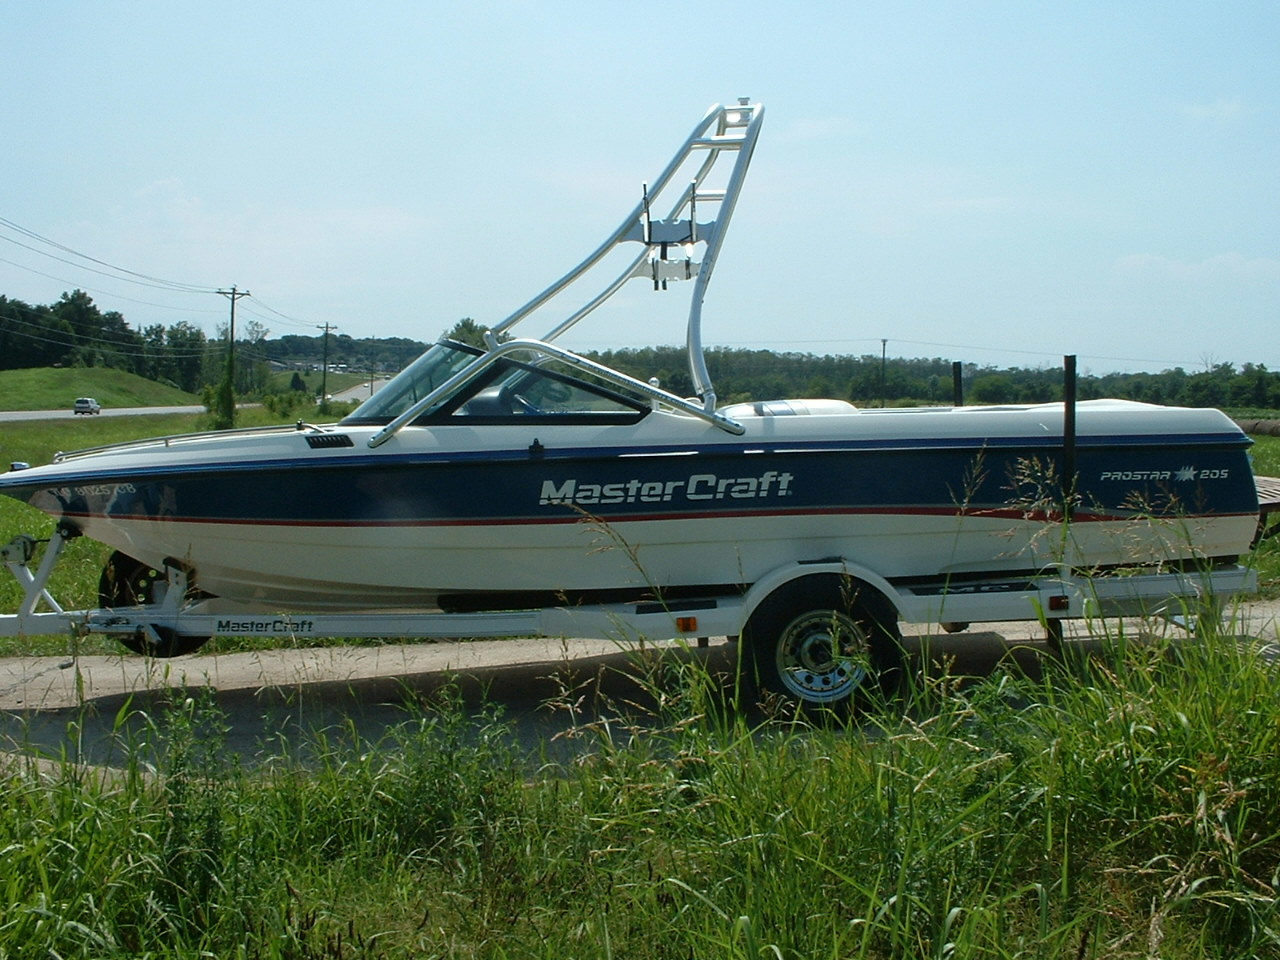 main view of 92 - 95 mastercraft prostar 205 with new dimension wake tower